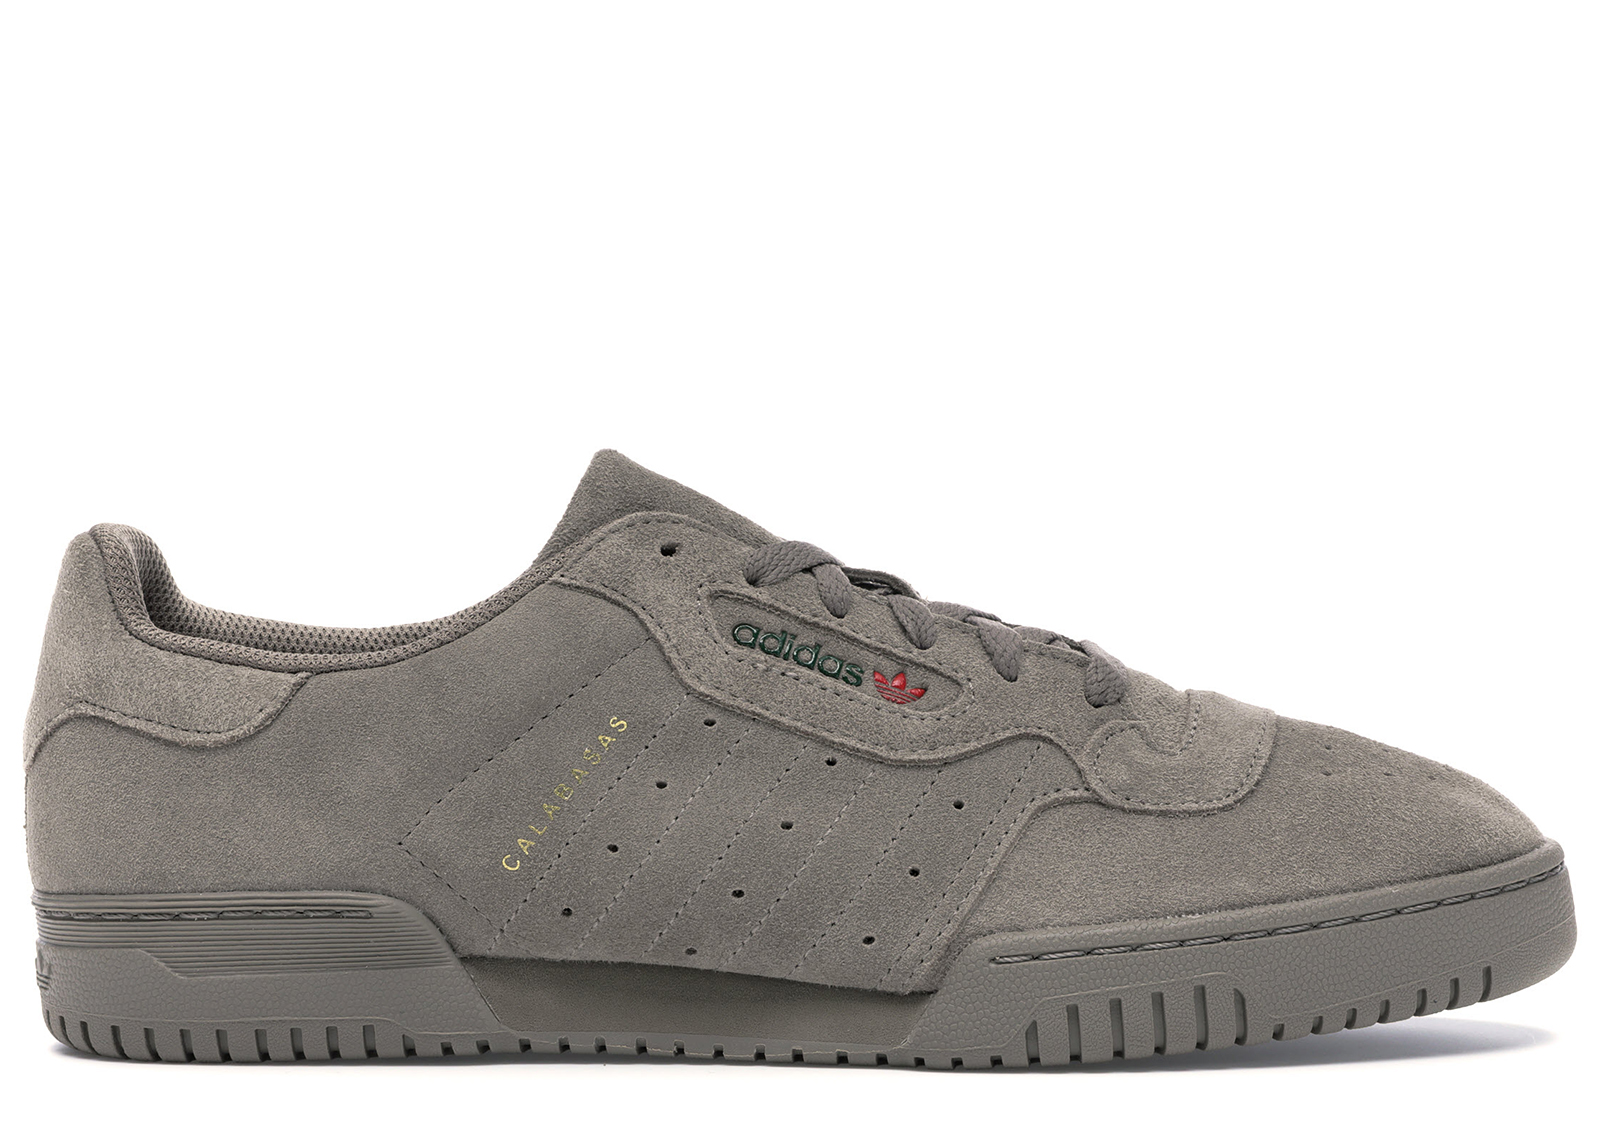 adidas Yeezy Powerphase Simple Brown